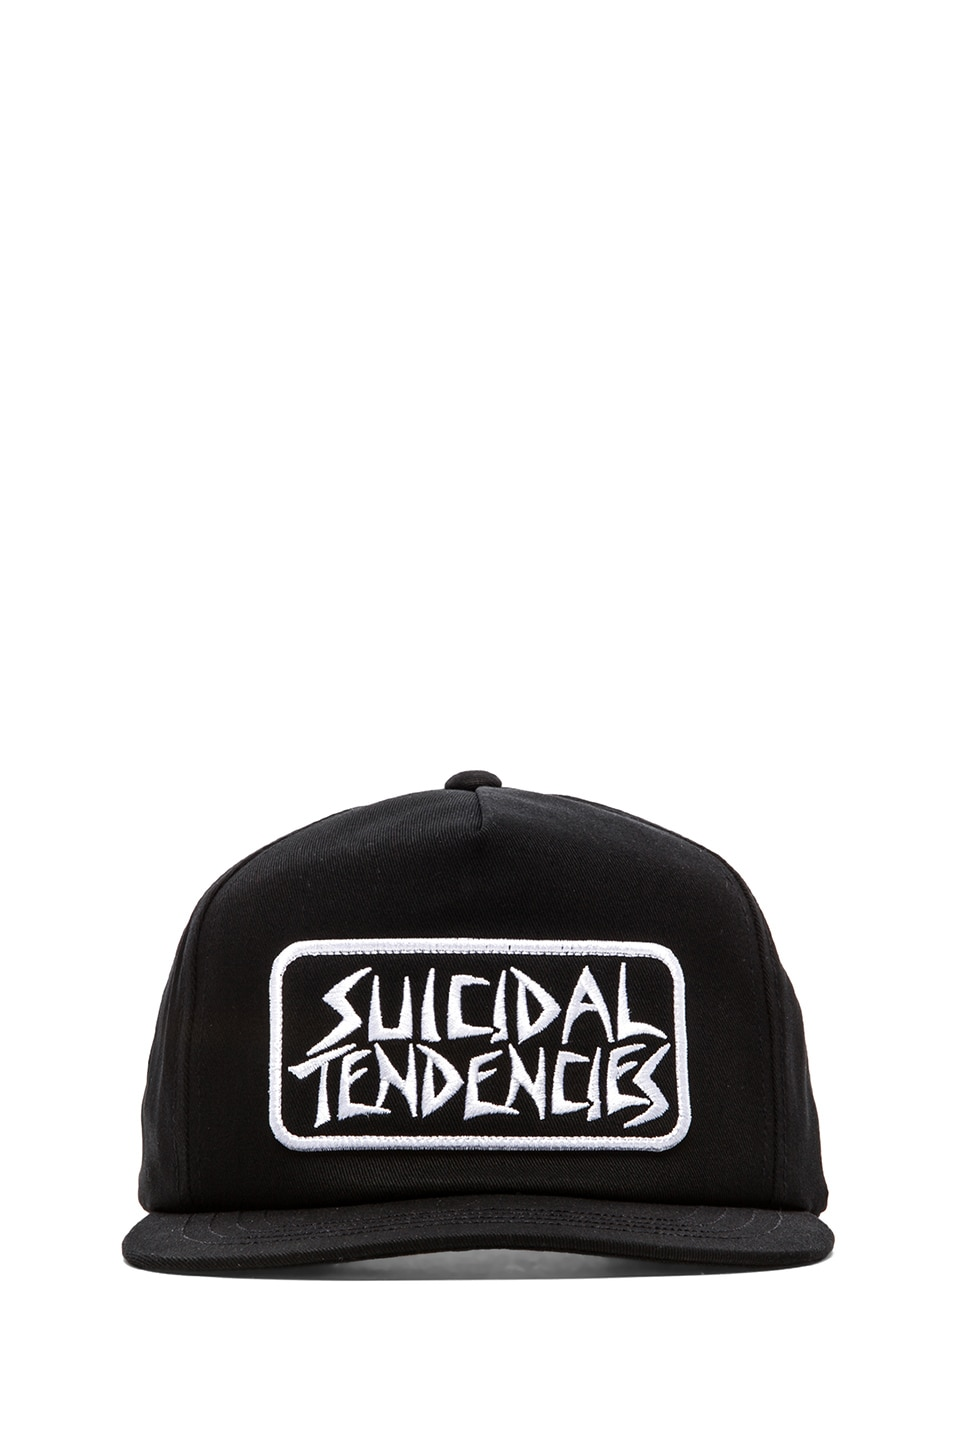 Obey x Suicidal Tendencies Collection Propaganda Snapback in Black